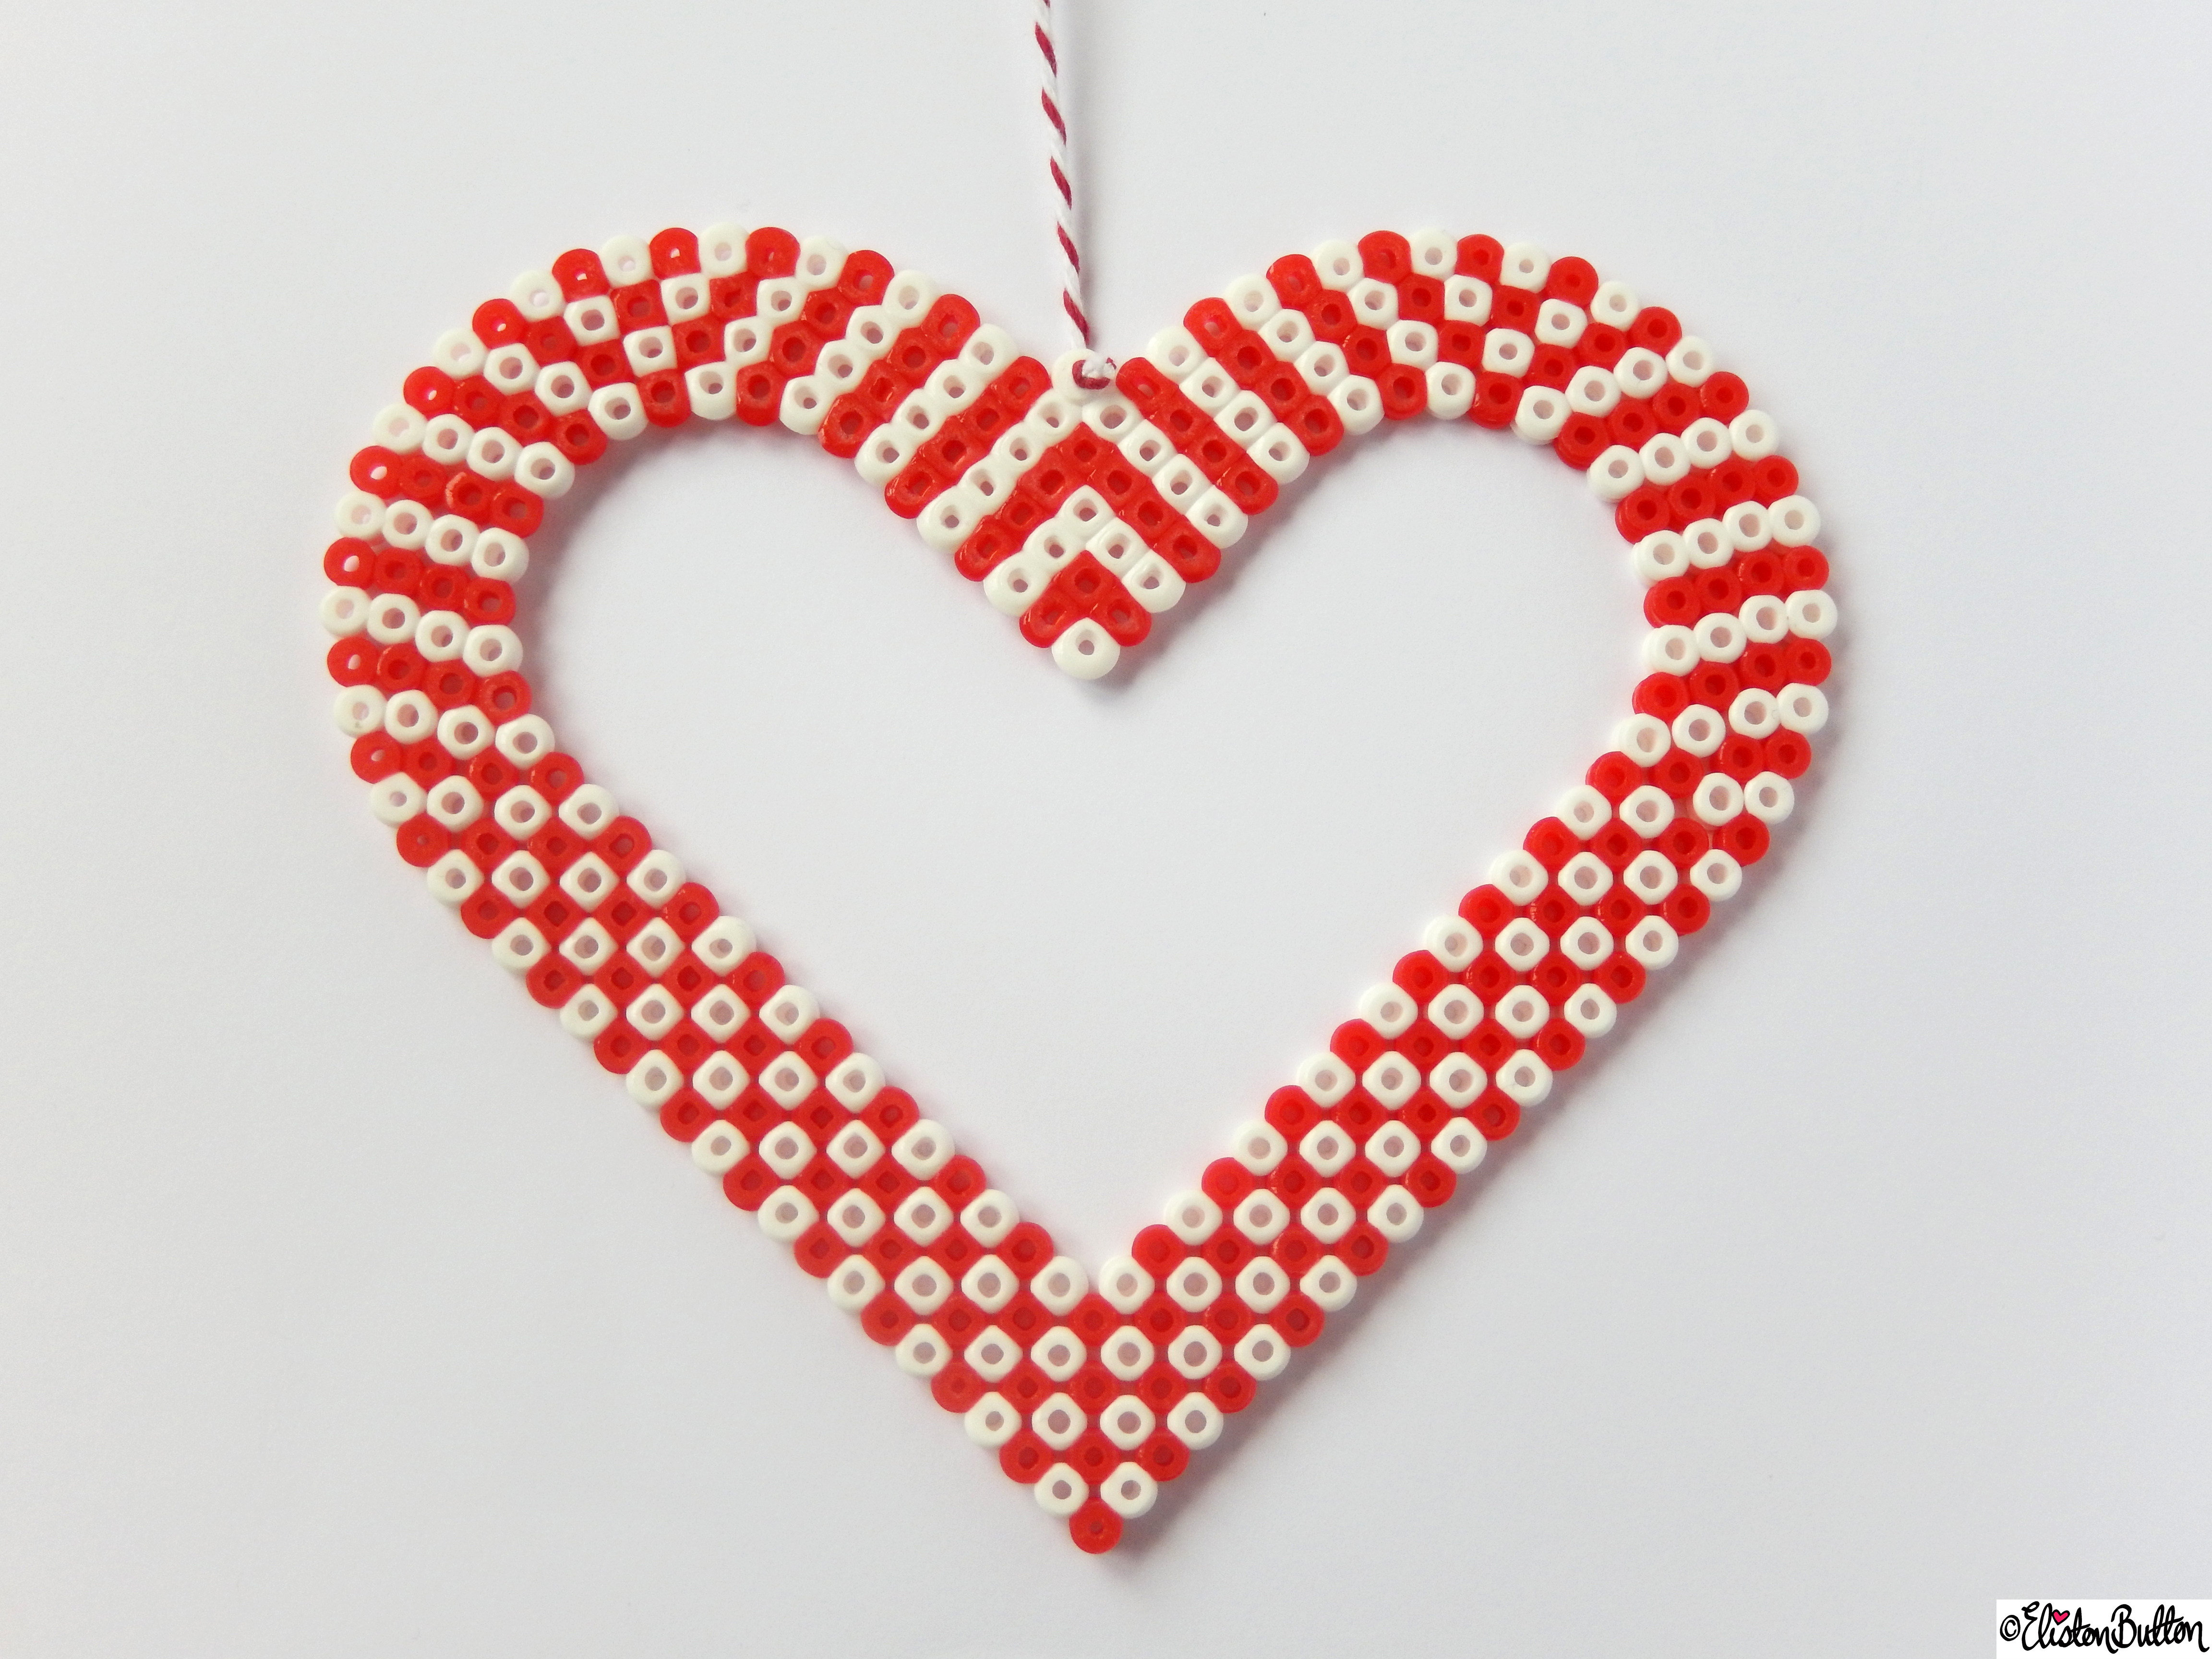 Picture Bead Wall Hanging Large Heart Close Up - Create 28 - No. 11&12 - Picture Bead Wall Hangings at www.elistonbutton.com - Eliston Button - That Crafty Kid – Art, Design, Craft & Adventure.